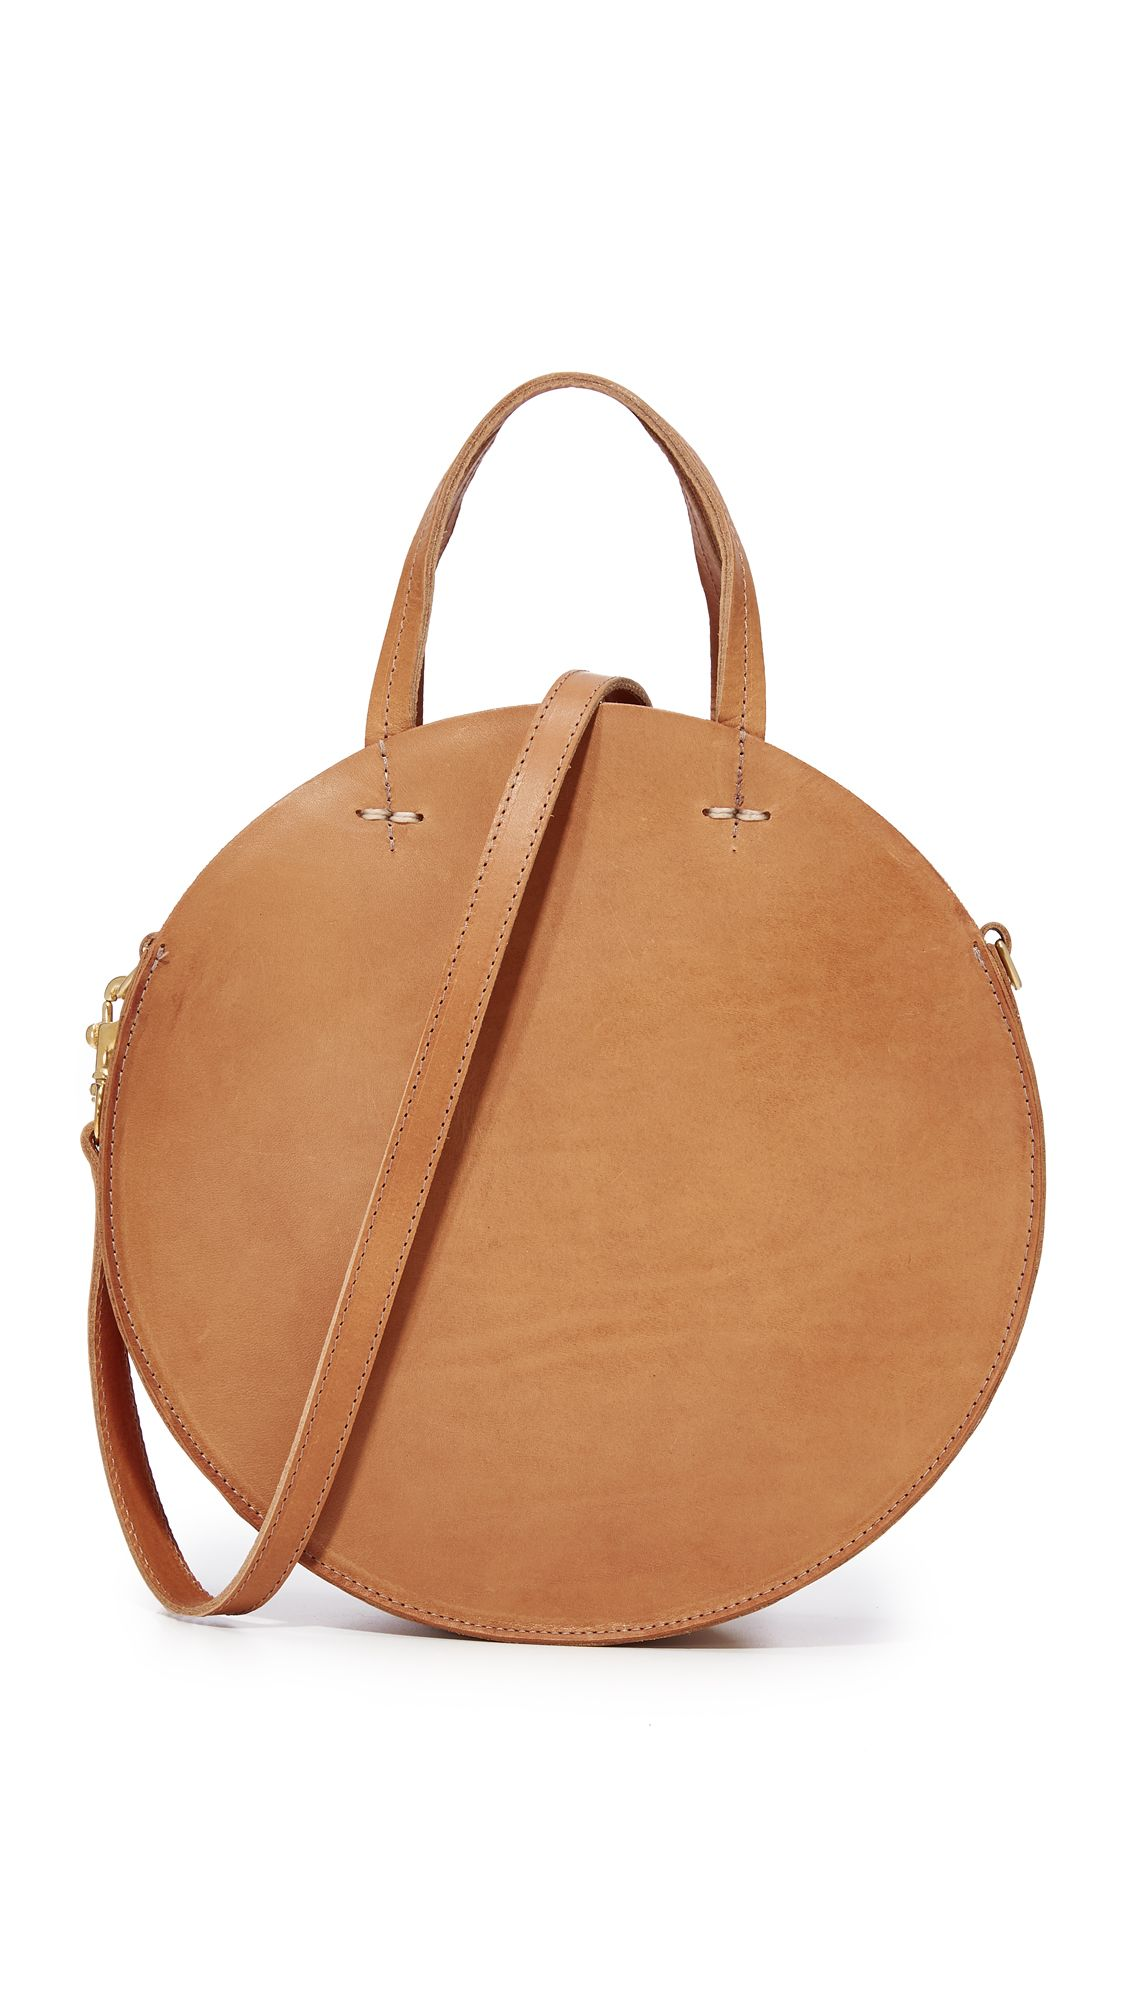 788eee18e clare v petite alistair leather circle bag | totes & handbags | Bags ...